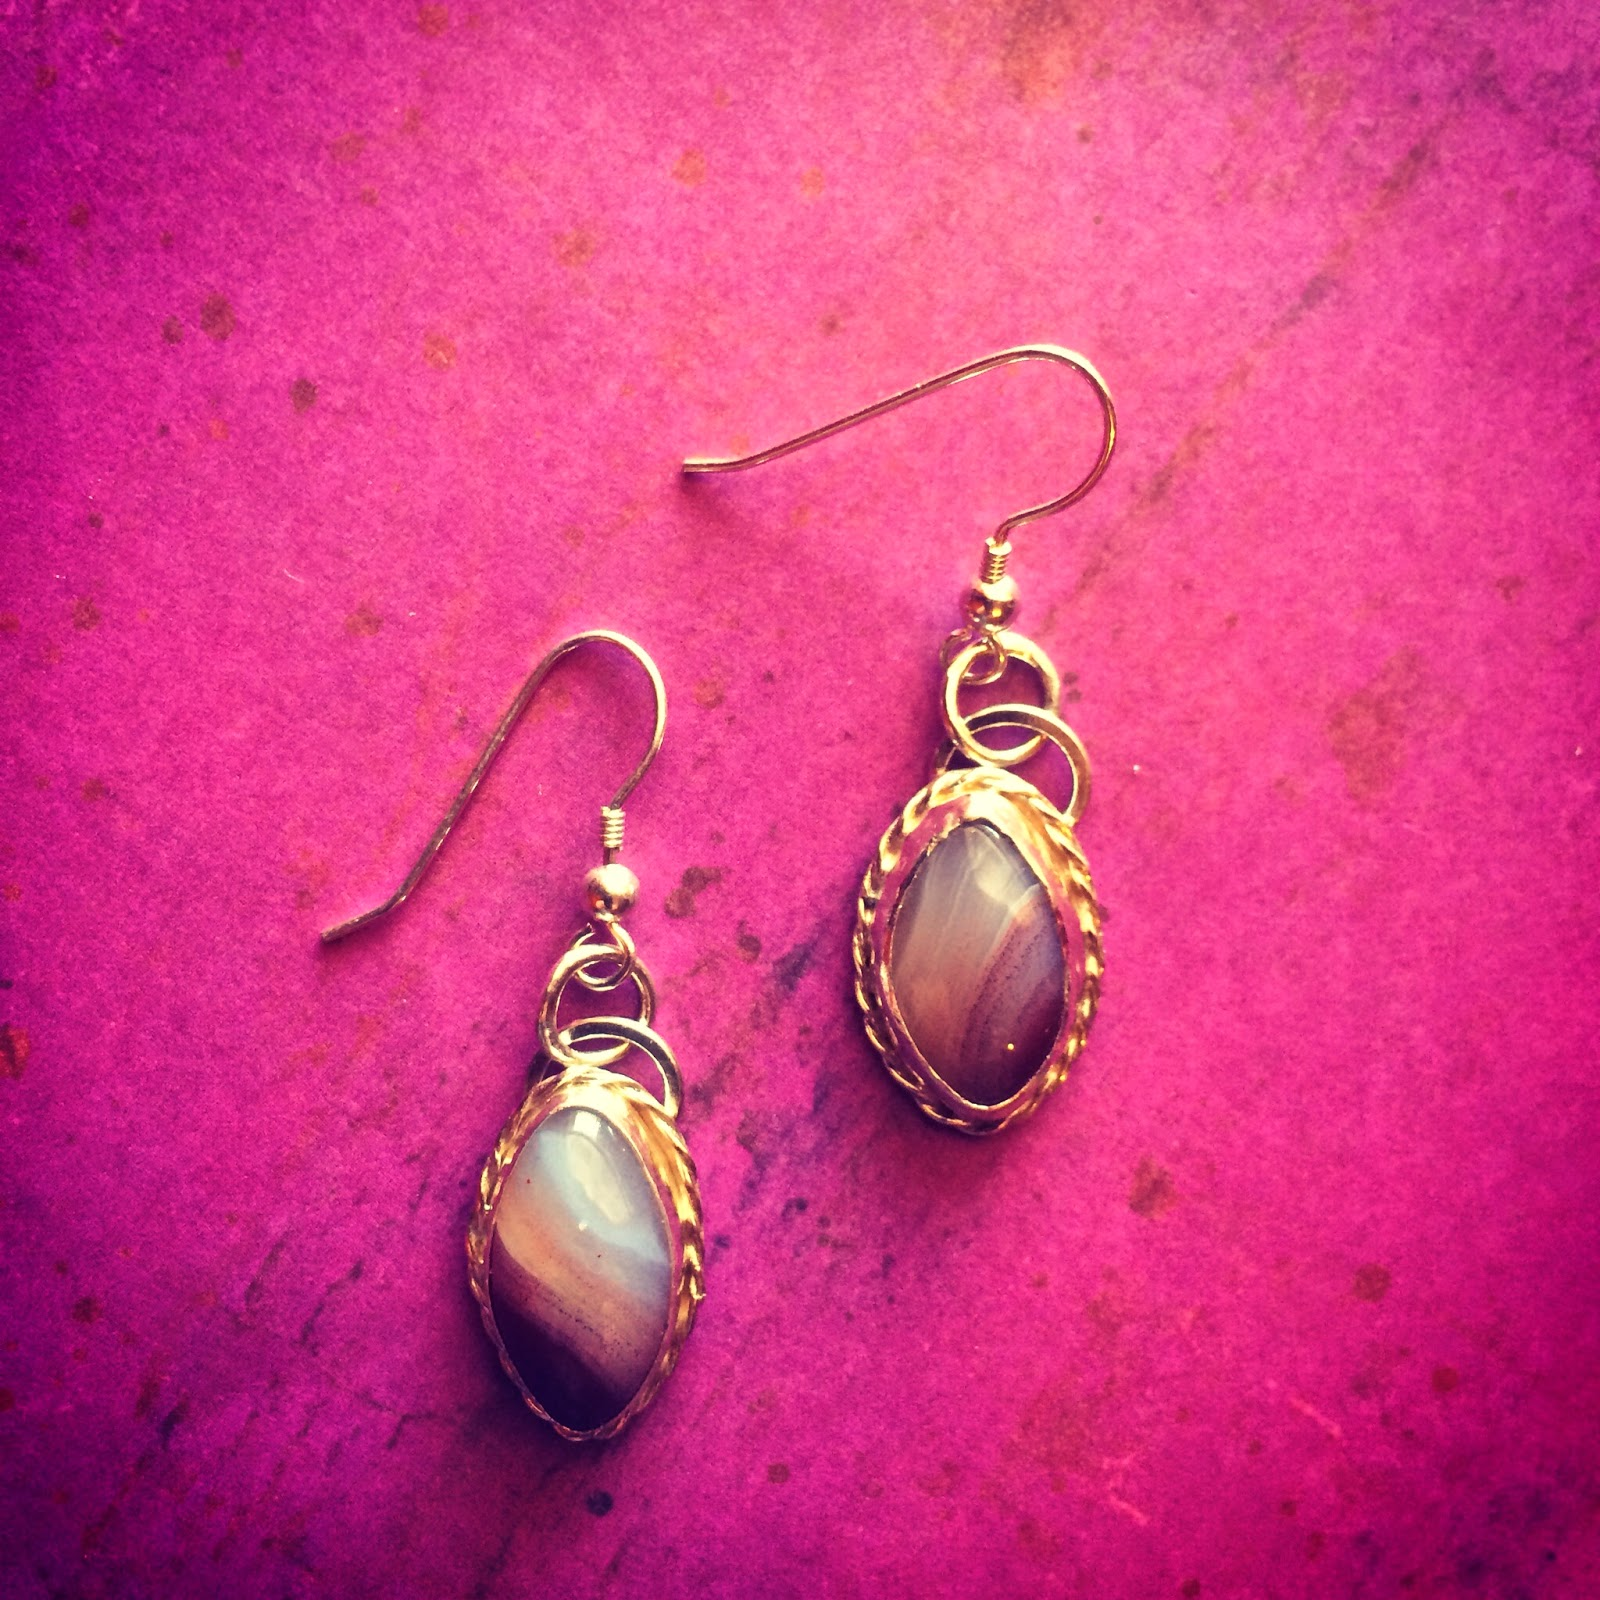 Silver earrings with silver twisted wire around banded agate stones